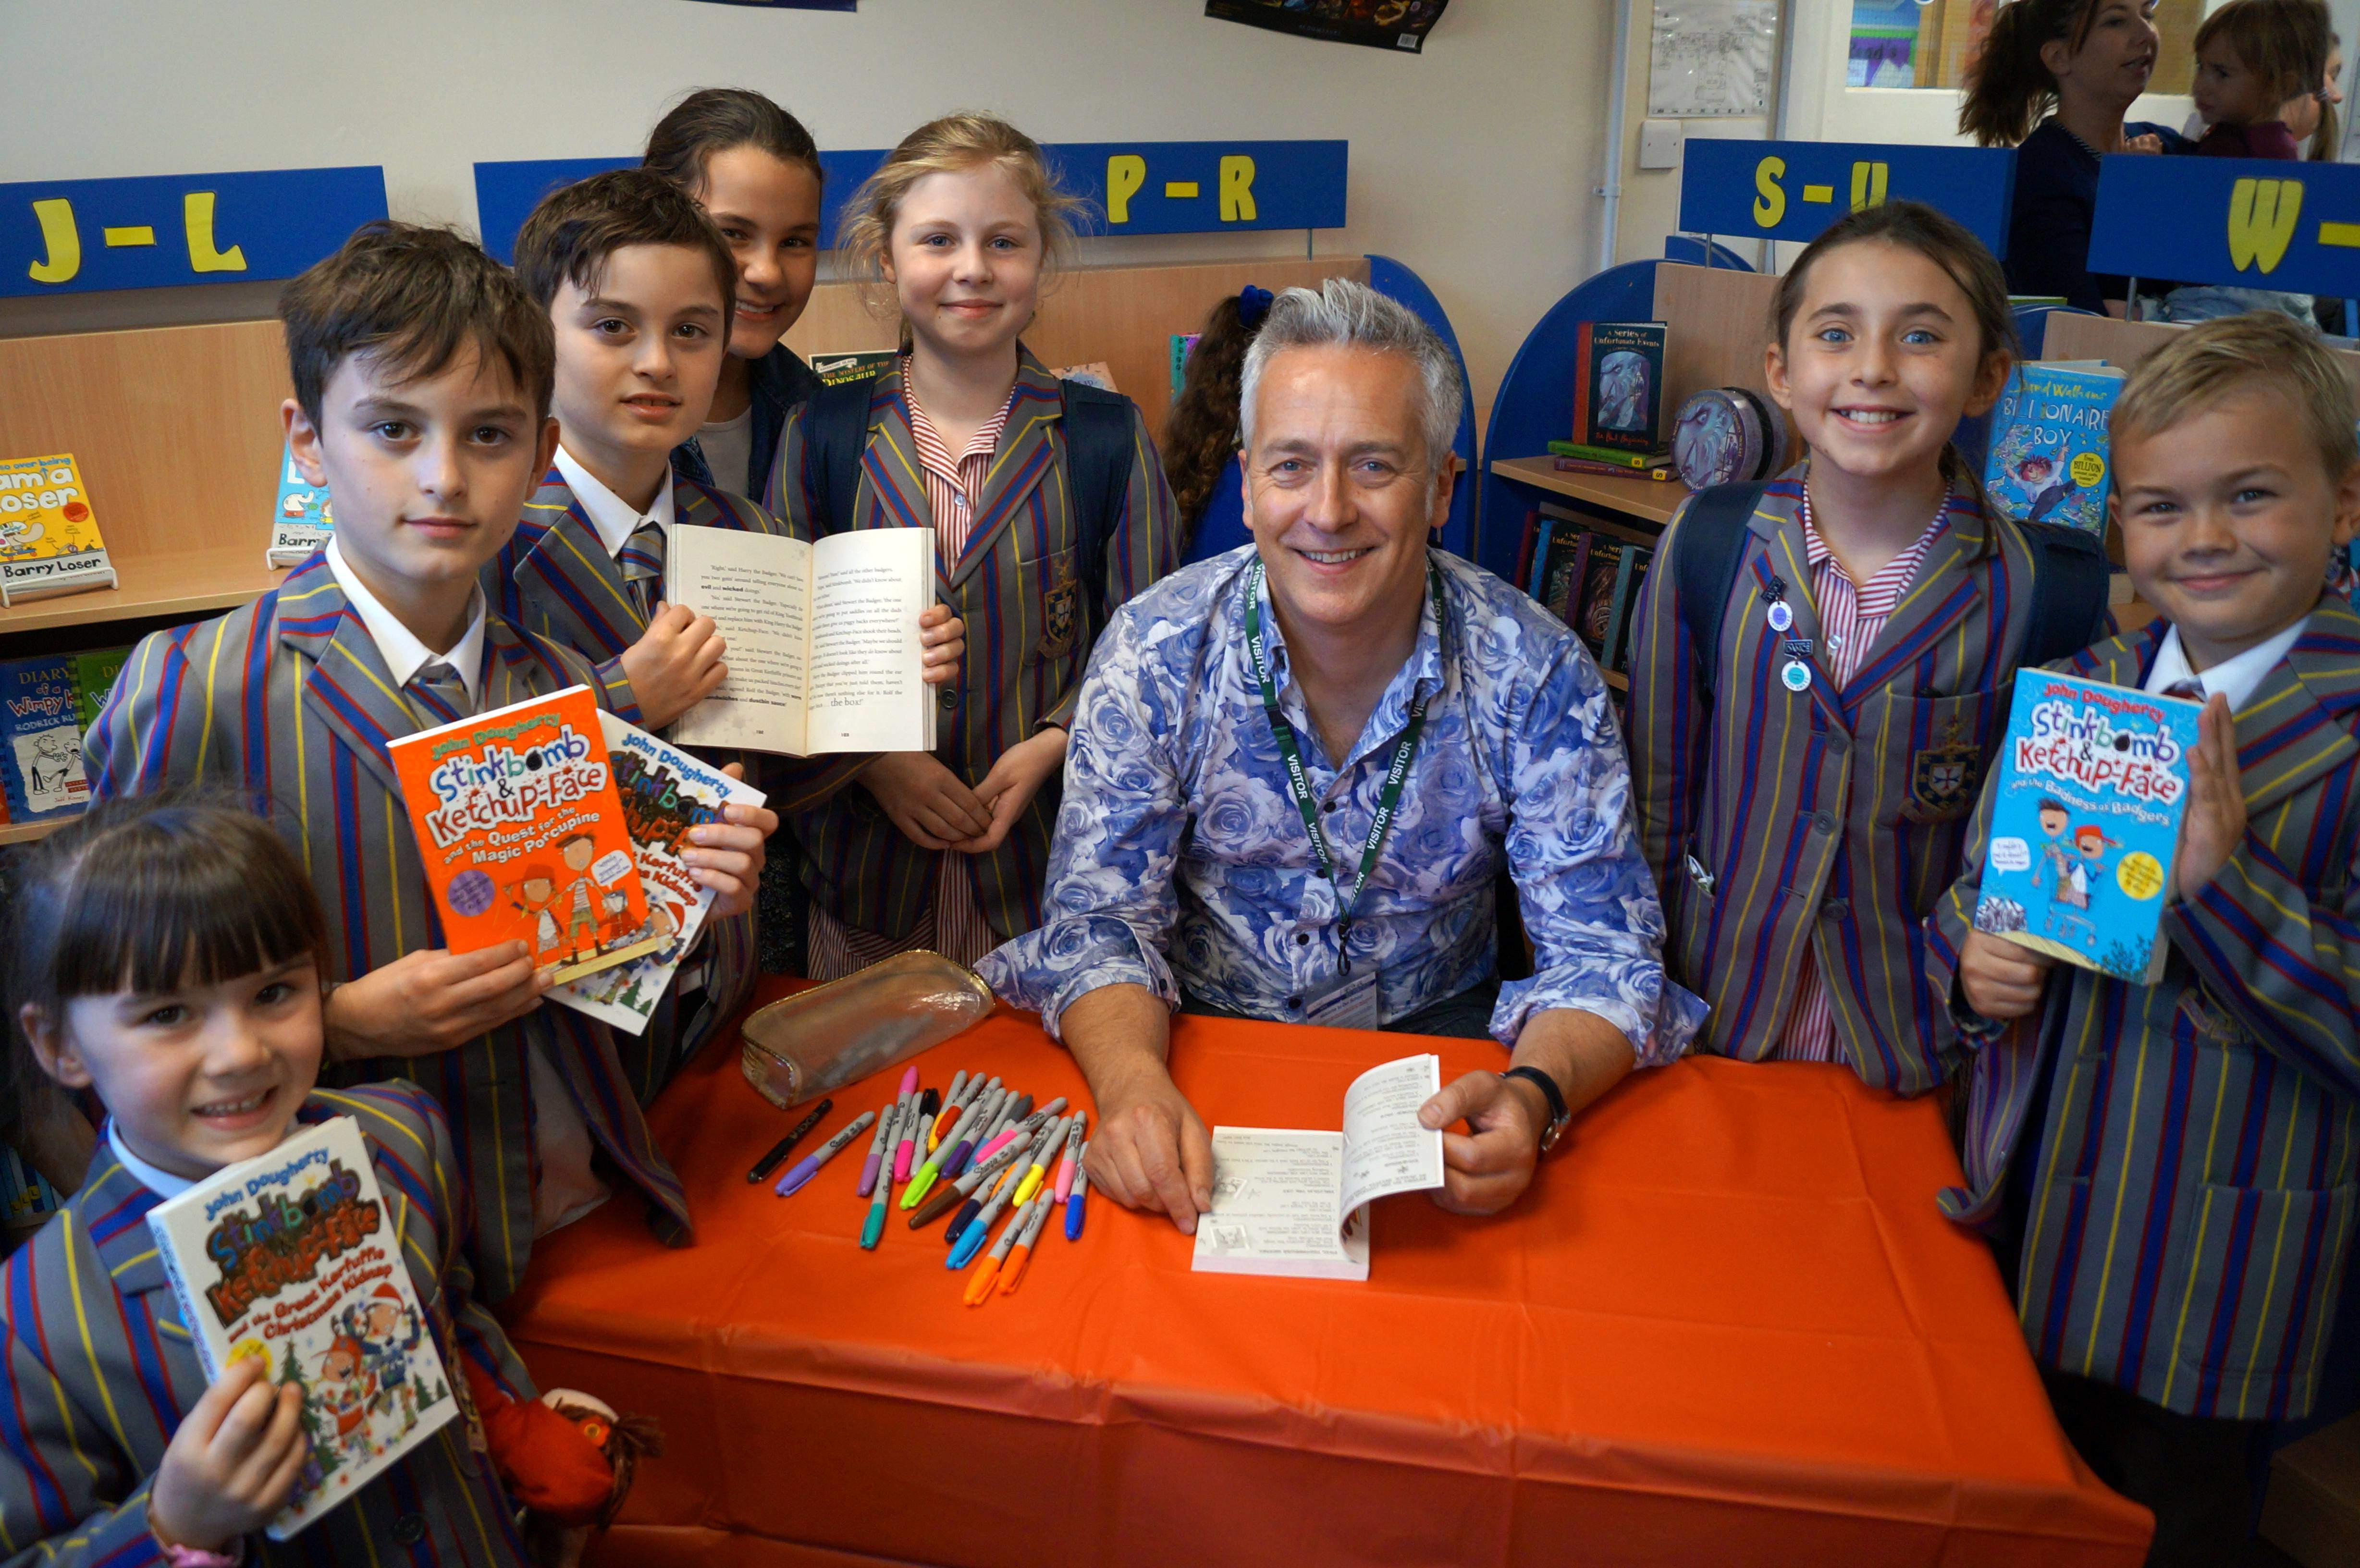 Book Signing at Kidderminster School by Celebrated Children's Author